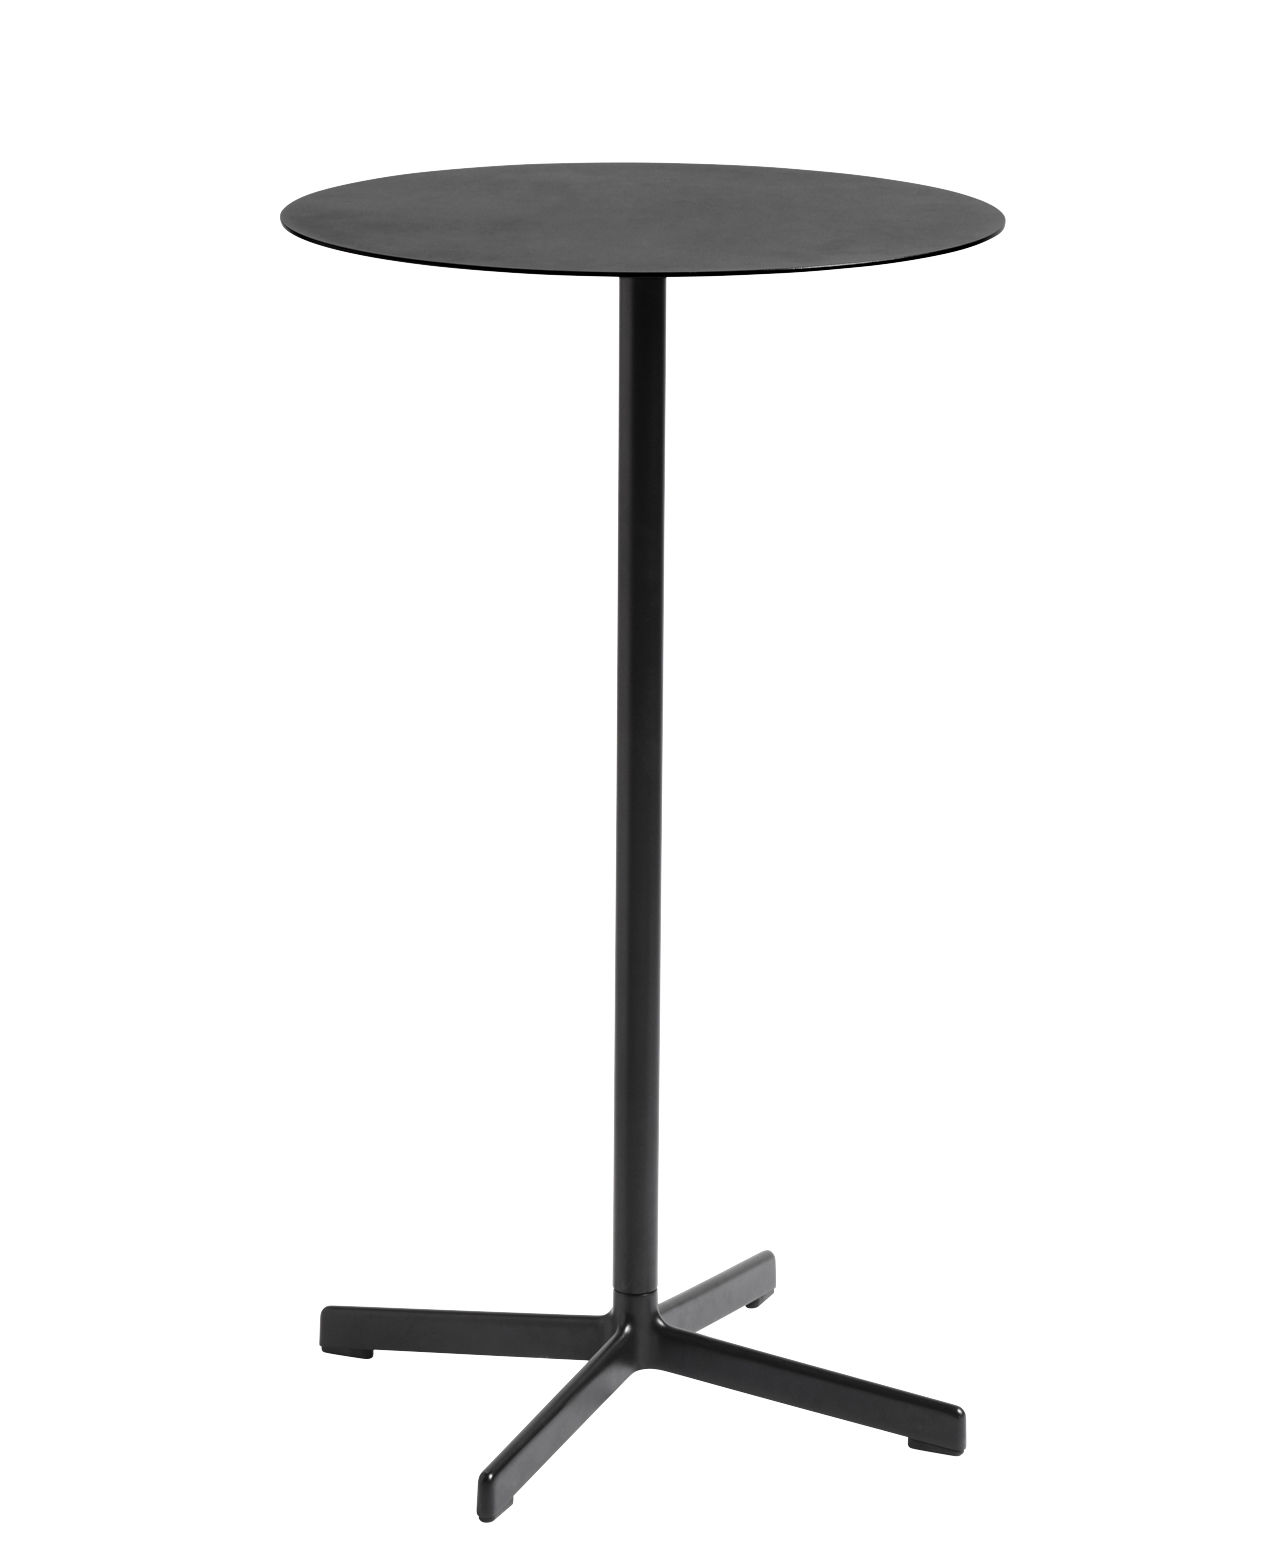 Furniture - High Tables - Neu High table - / Ø 60 x H 106 cm by Hay - Black - Epoxy lacquered cast aluminium, Epoxy-lacquered electro-galvanised steel